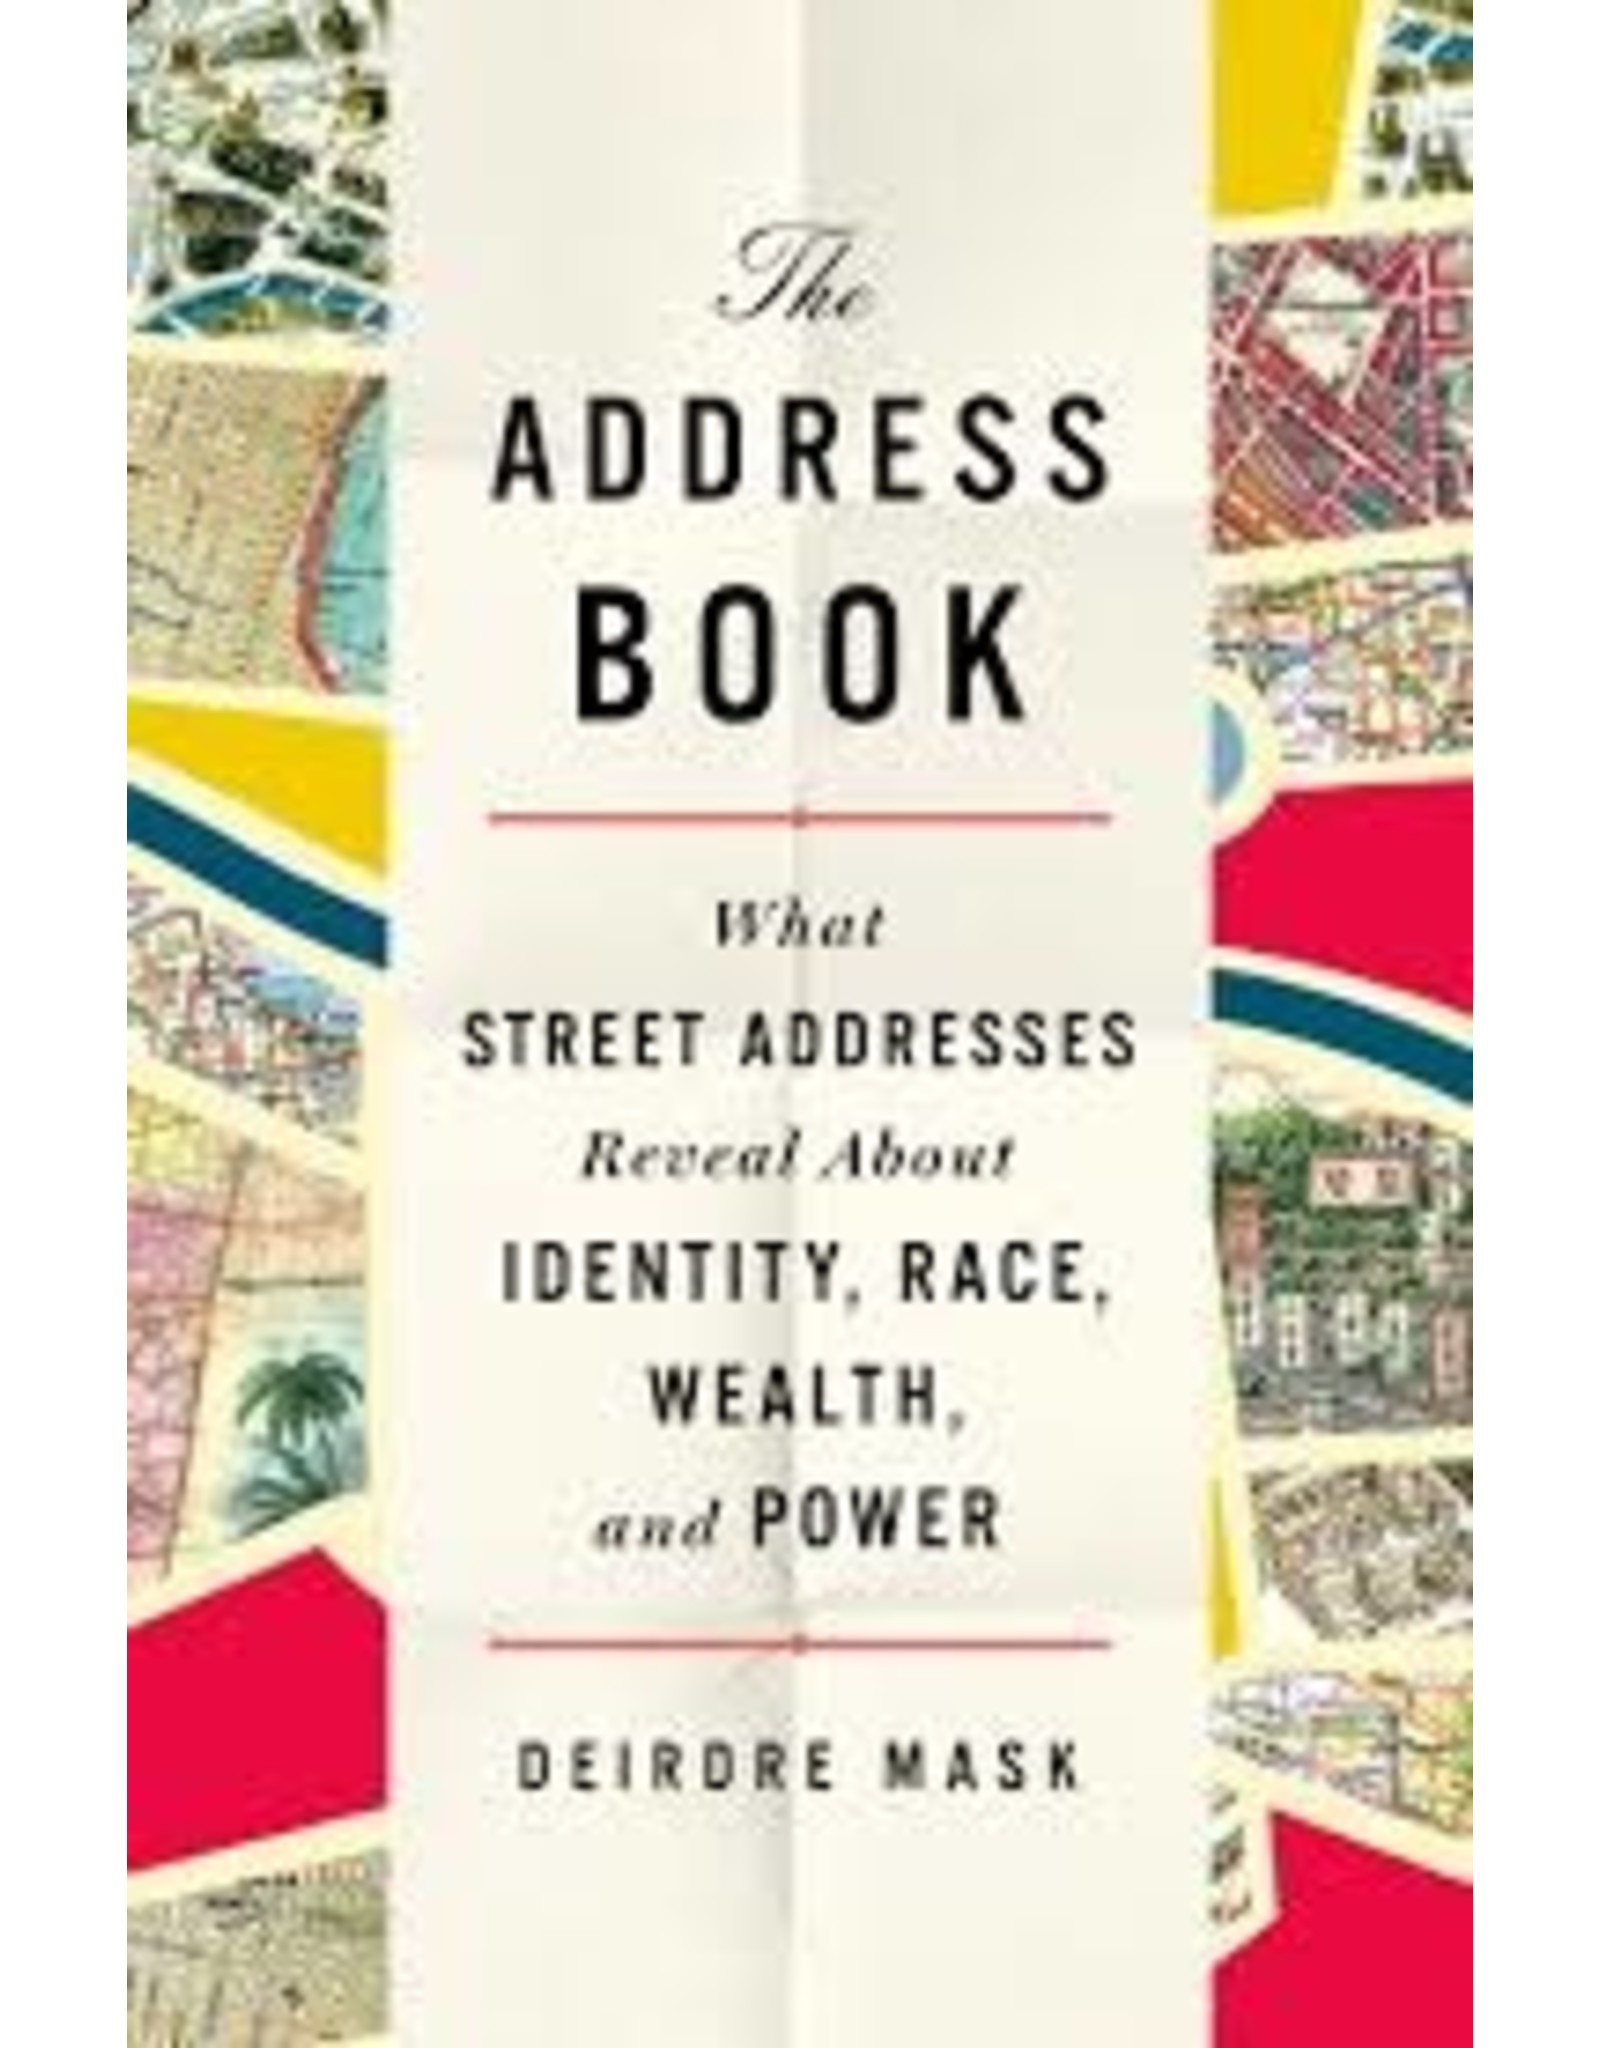 Books The Address Book : What Street Addresses Reveal About Identity, Race, Wealth and Power by Deirdre Mask